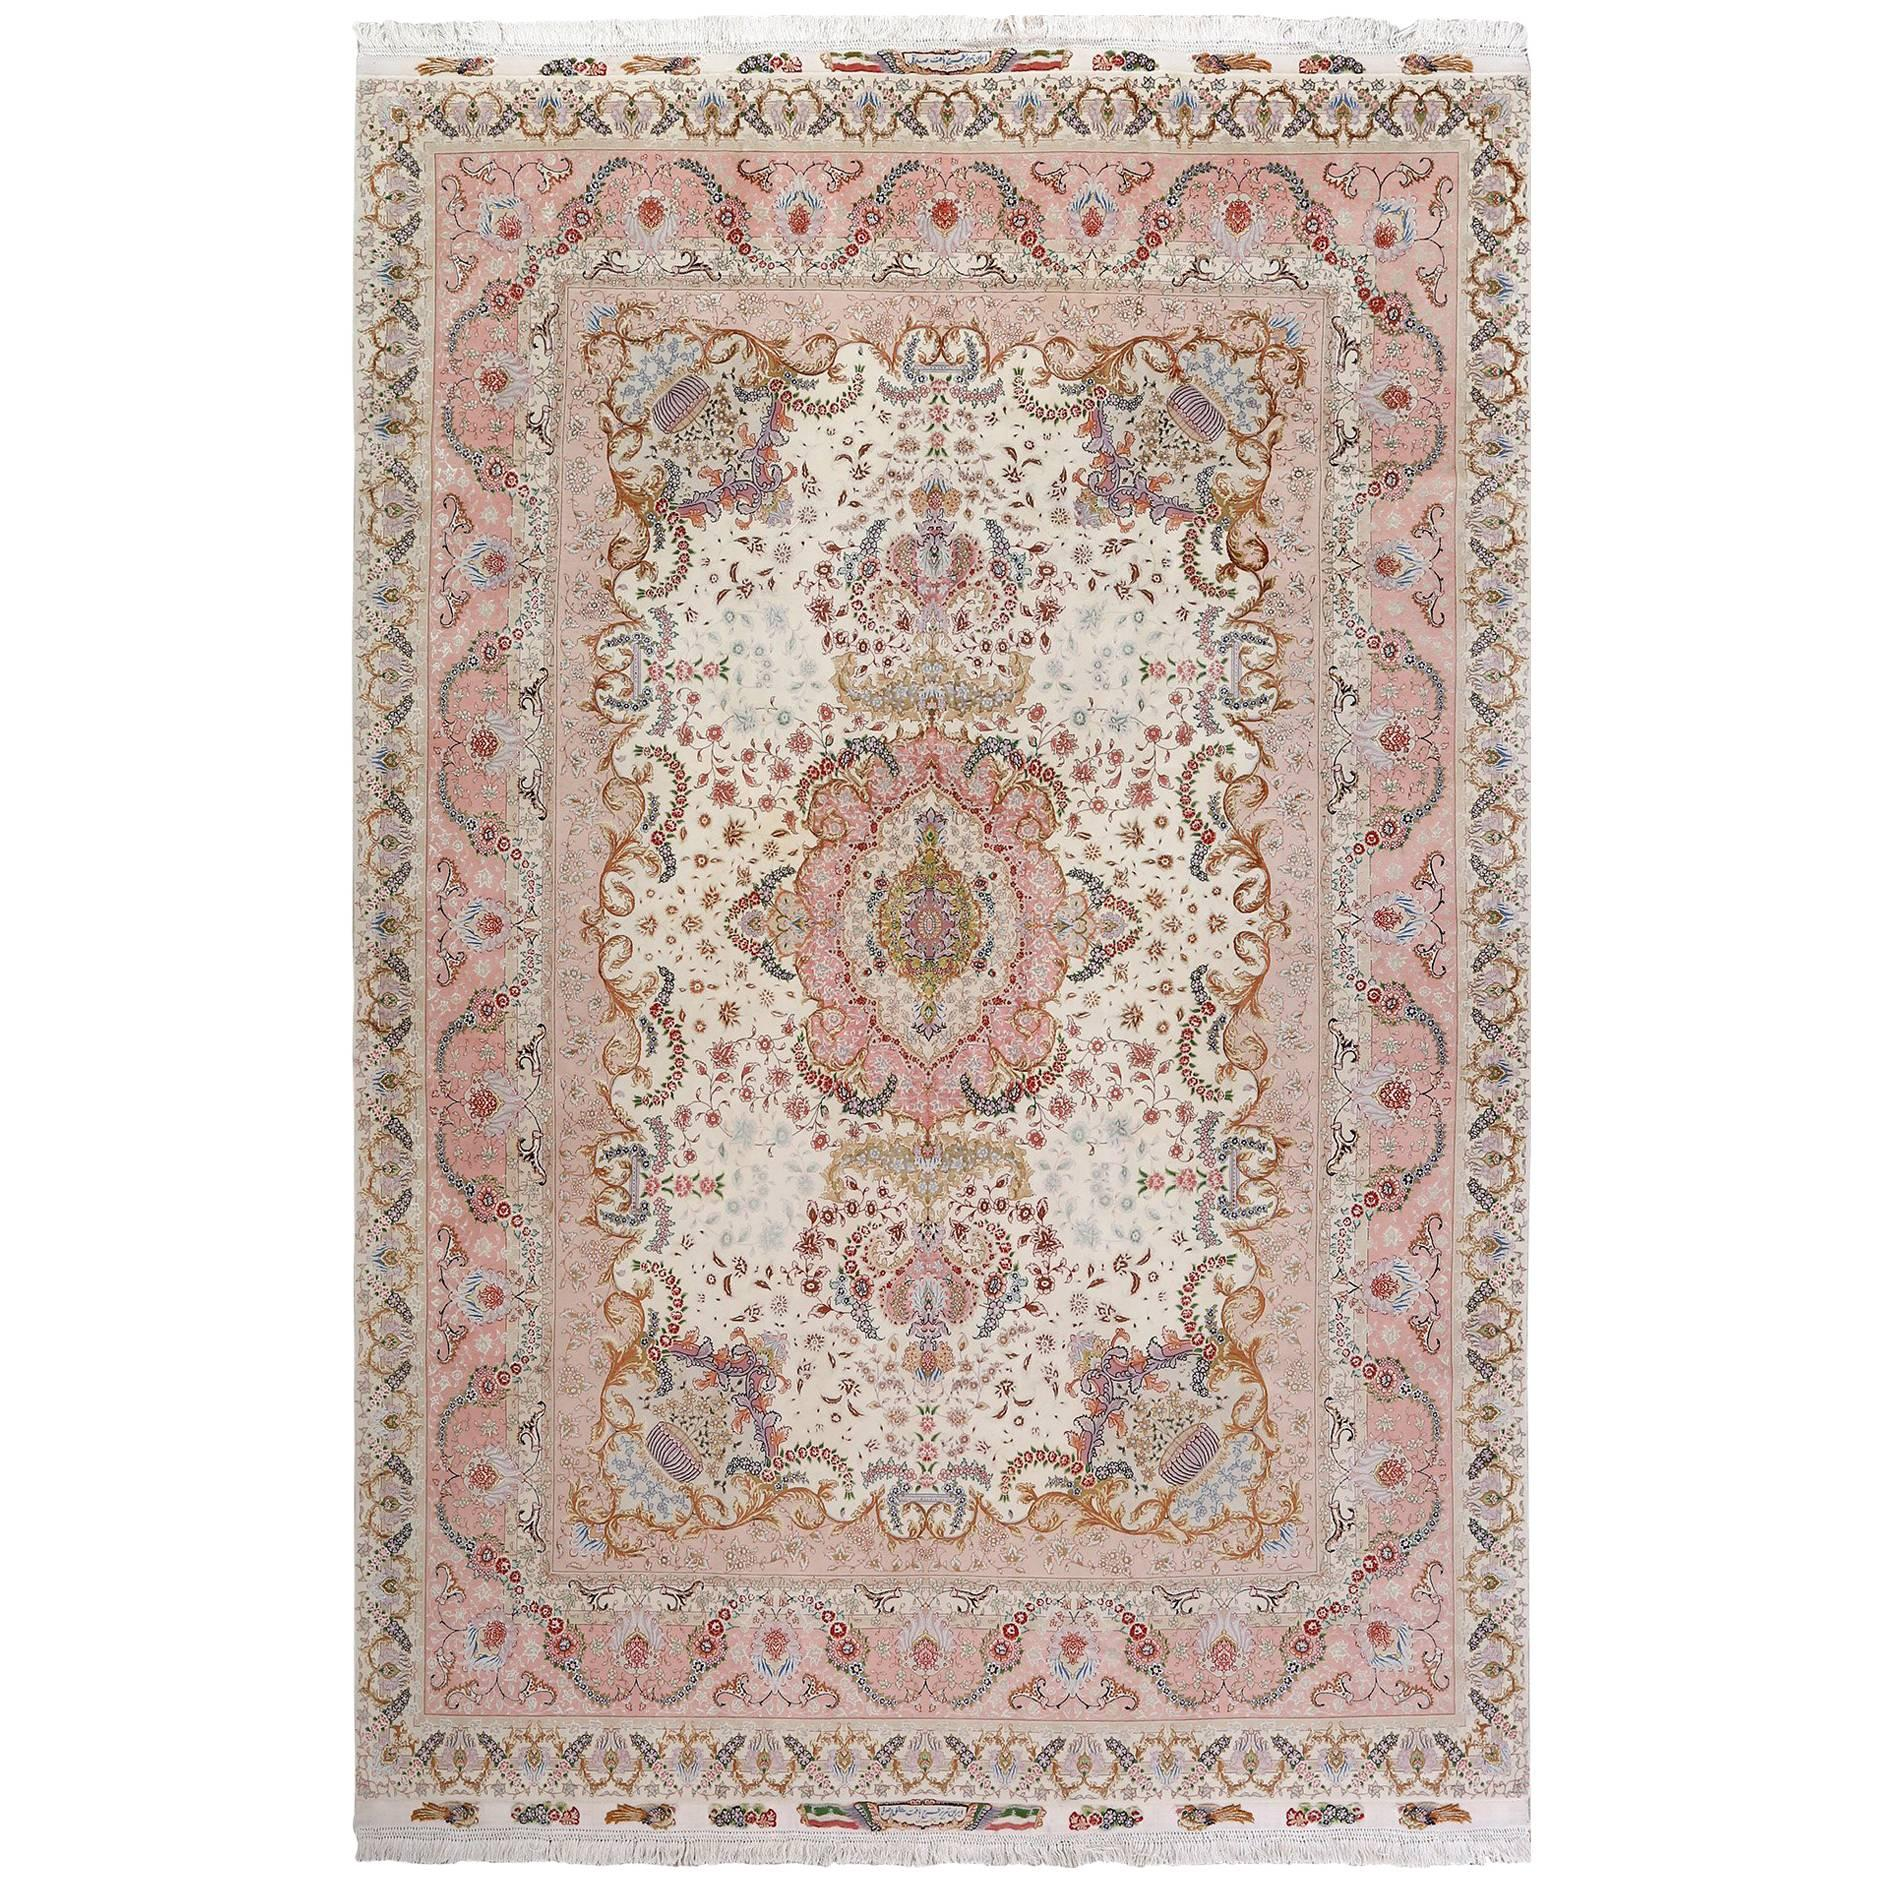 Fine Ivory Vintage Tabriz Persian Rug. Size: 8 ft 2 in x 12 ft 1 in